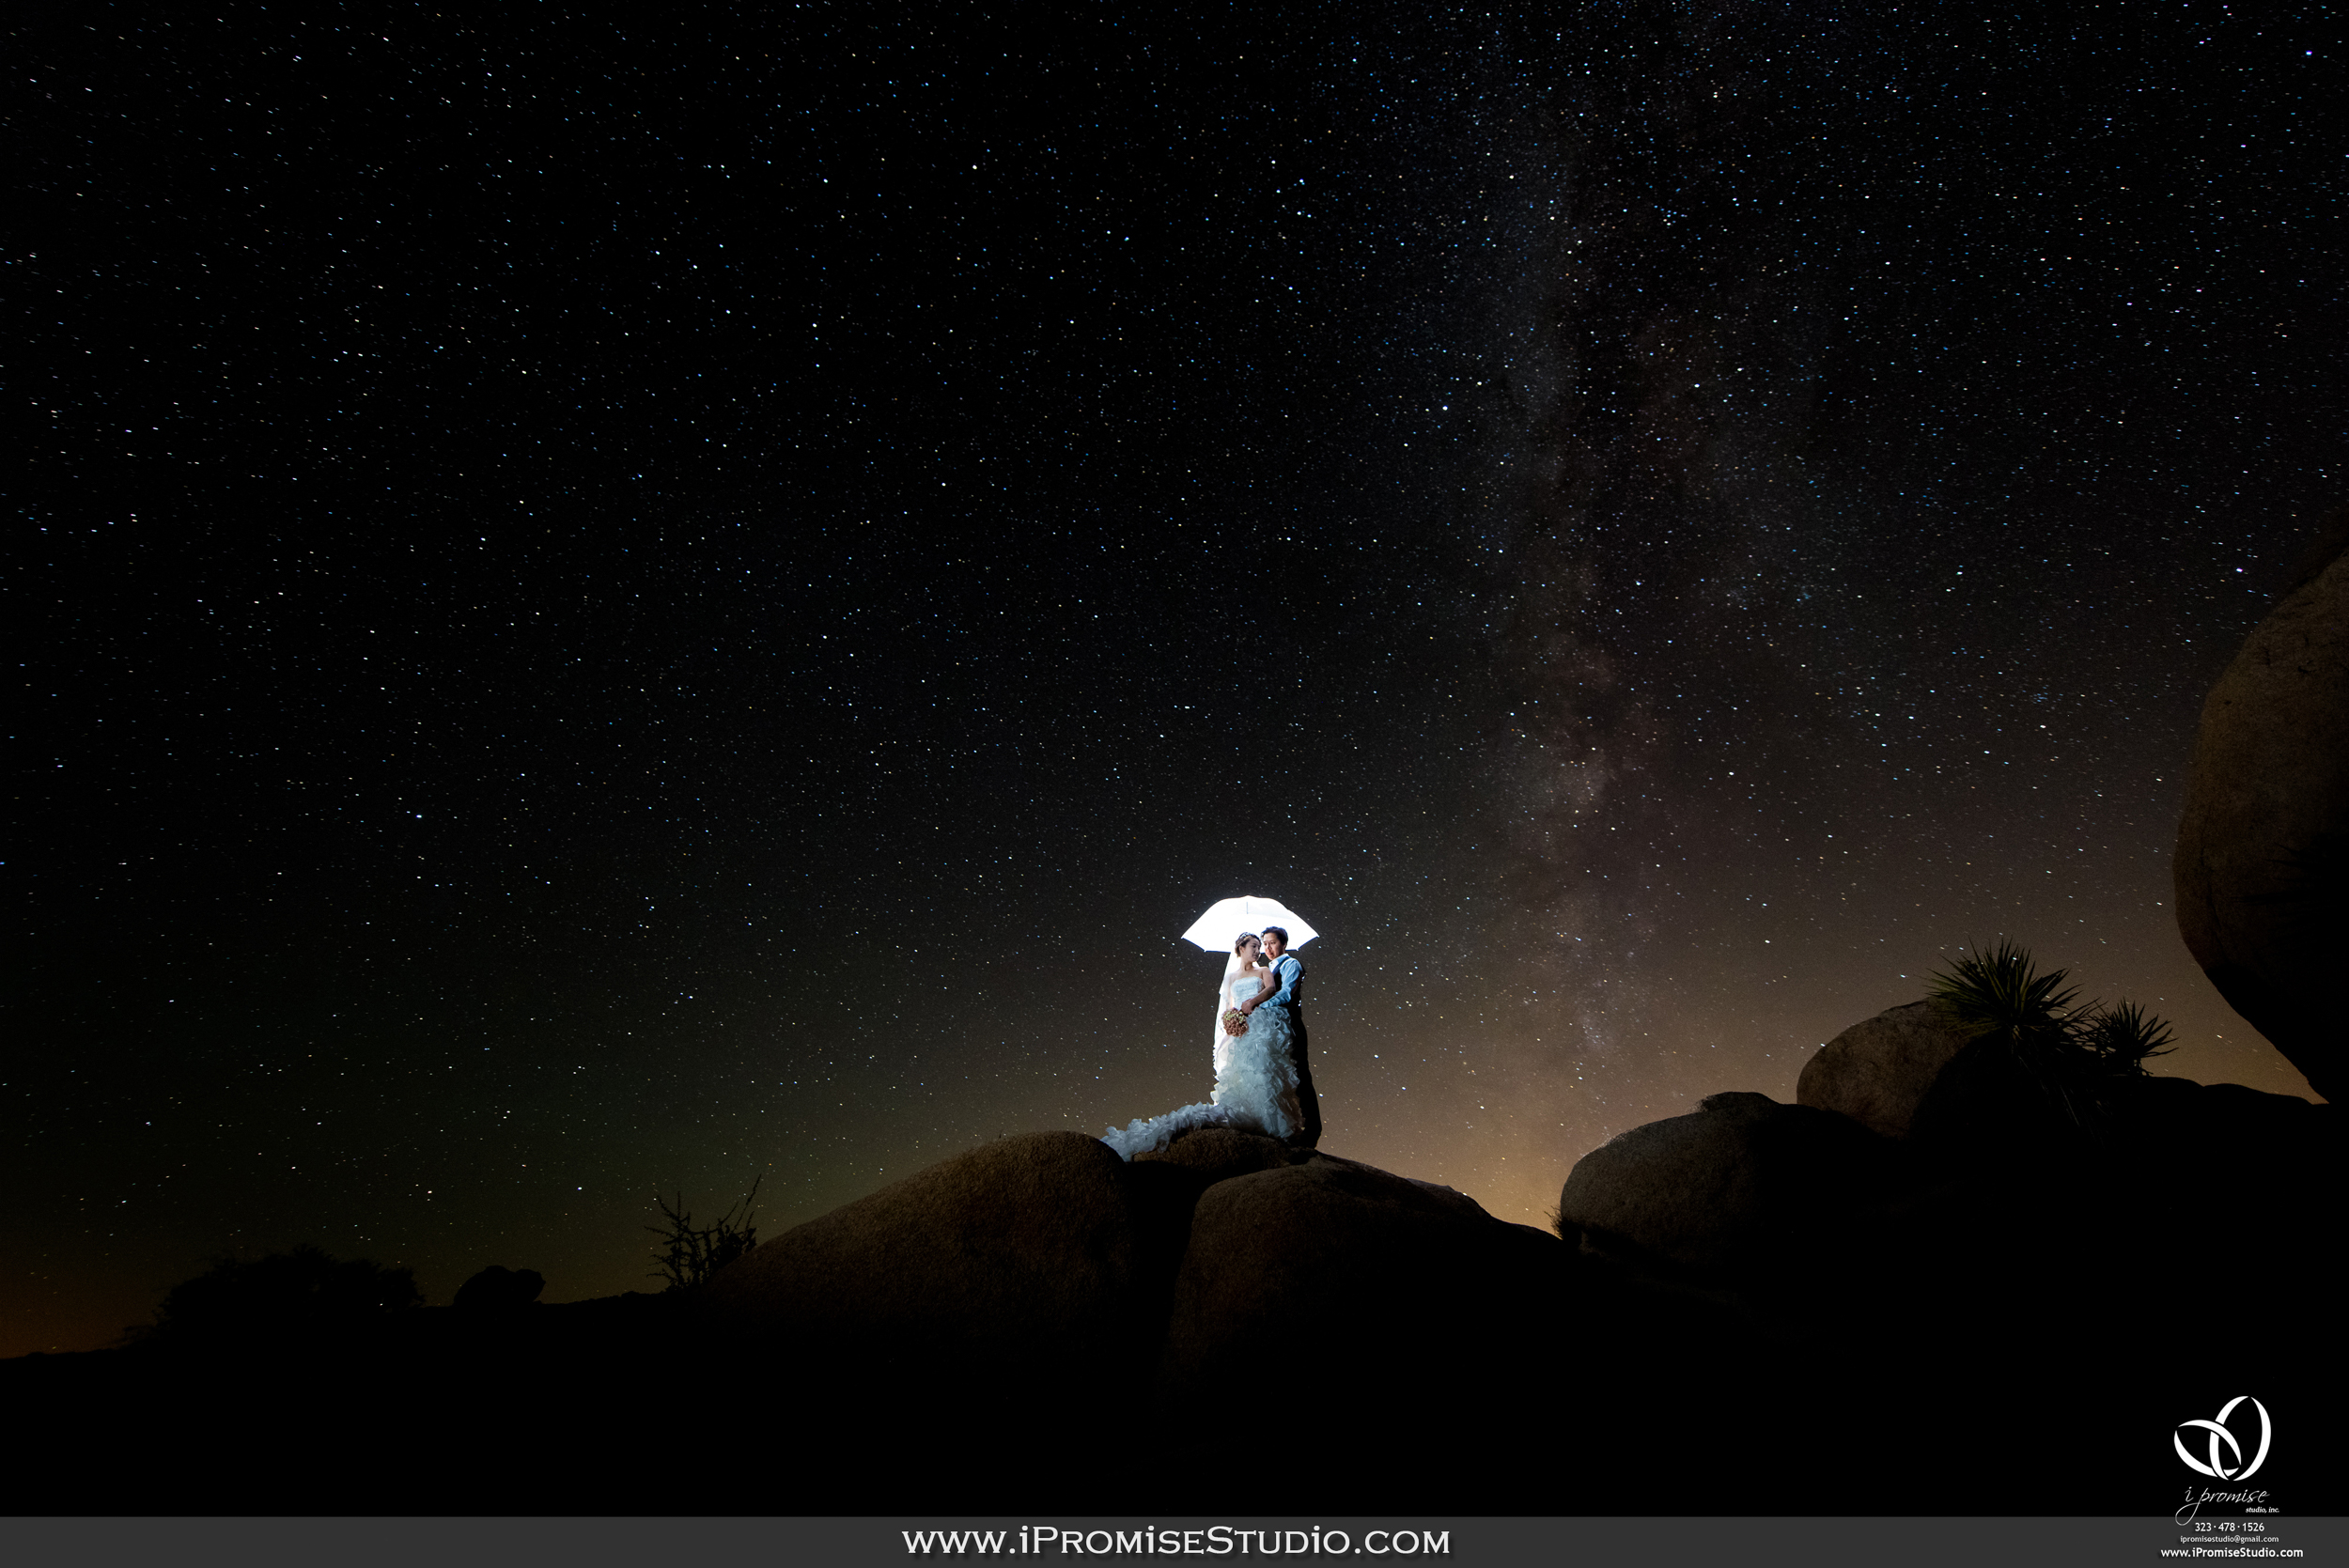 California Milky Way Galaxy Joshua Tree National Park -engagement wedding 01 02.JPG